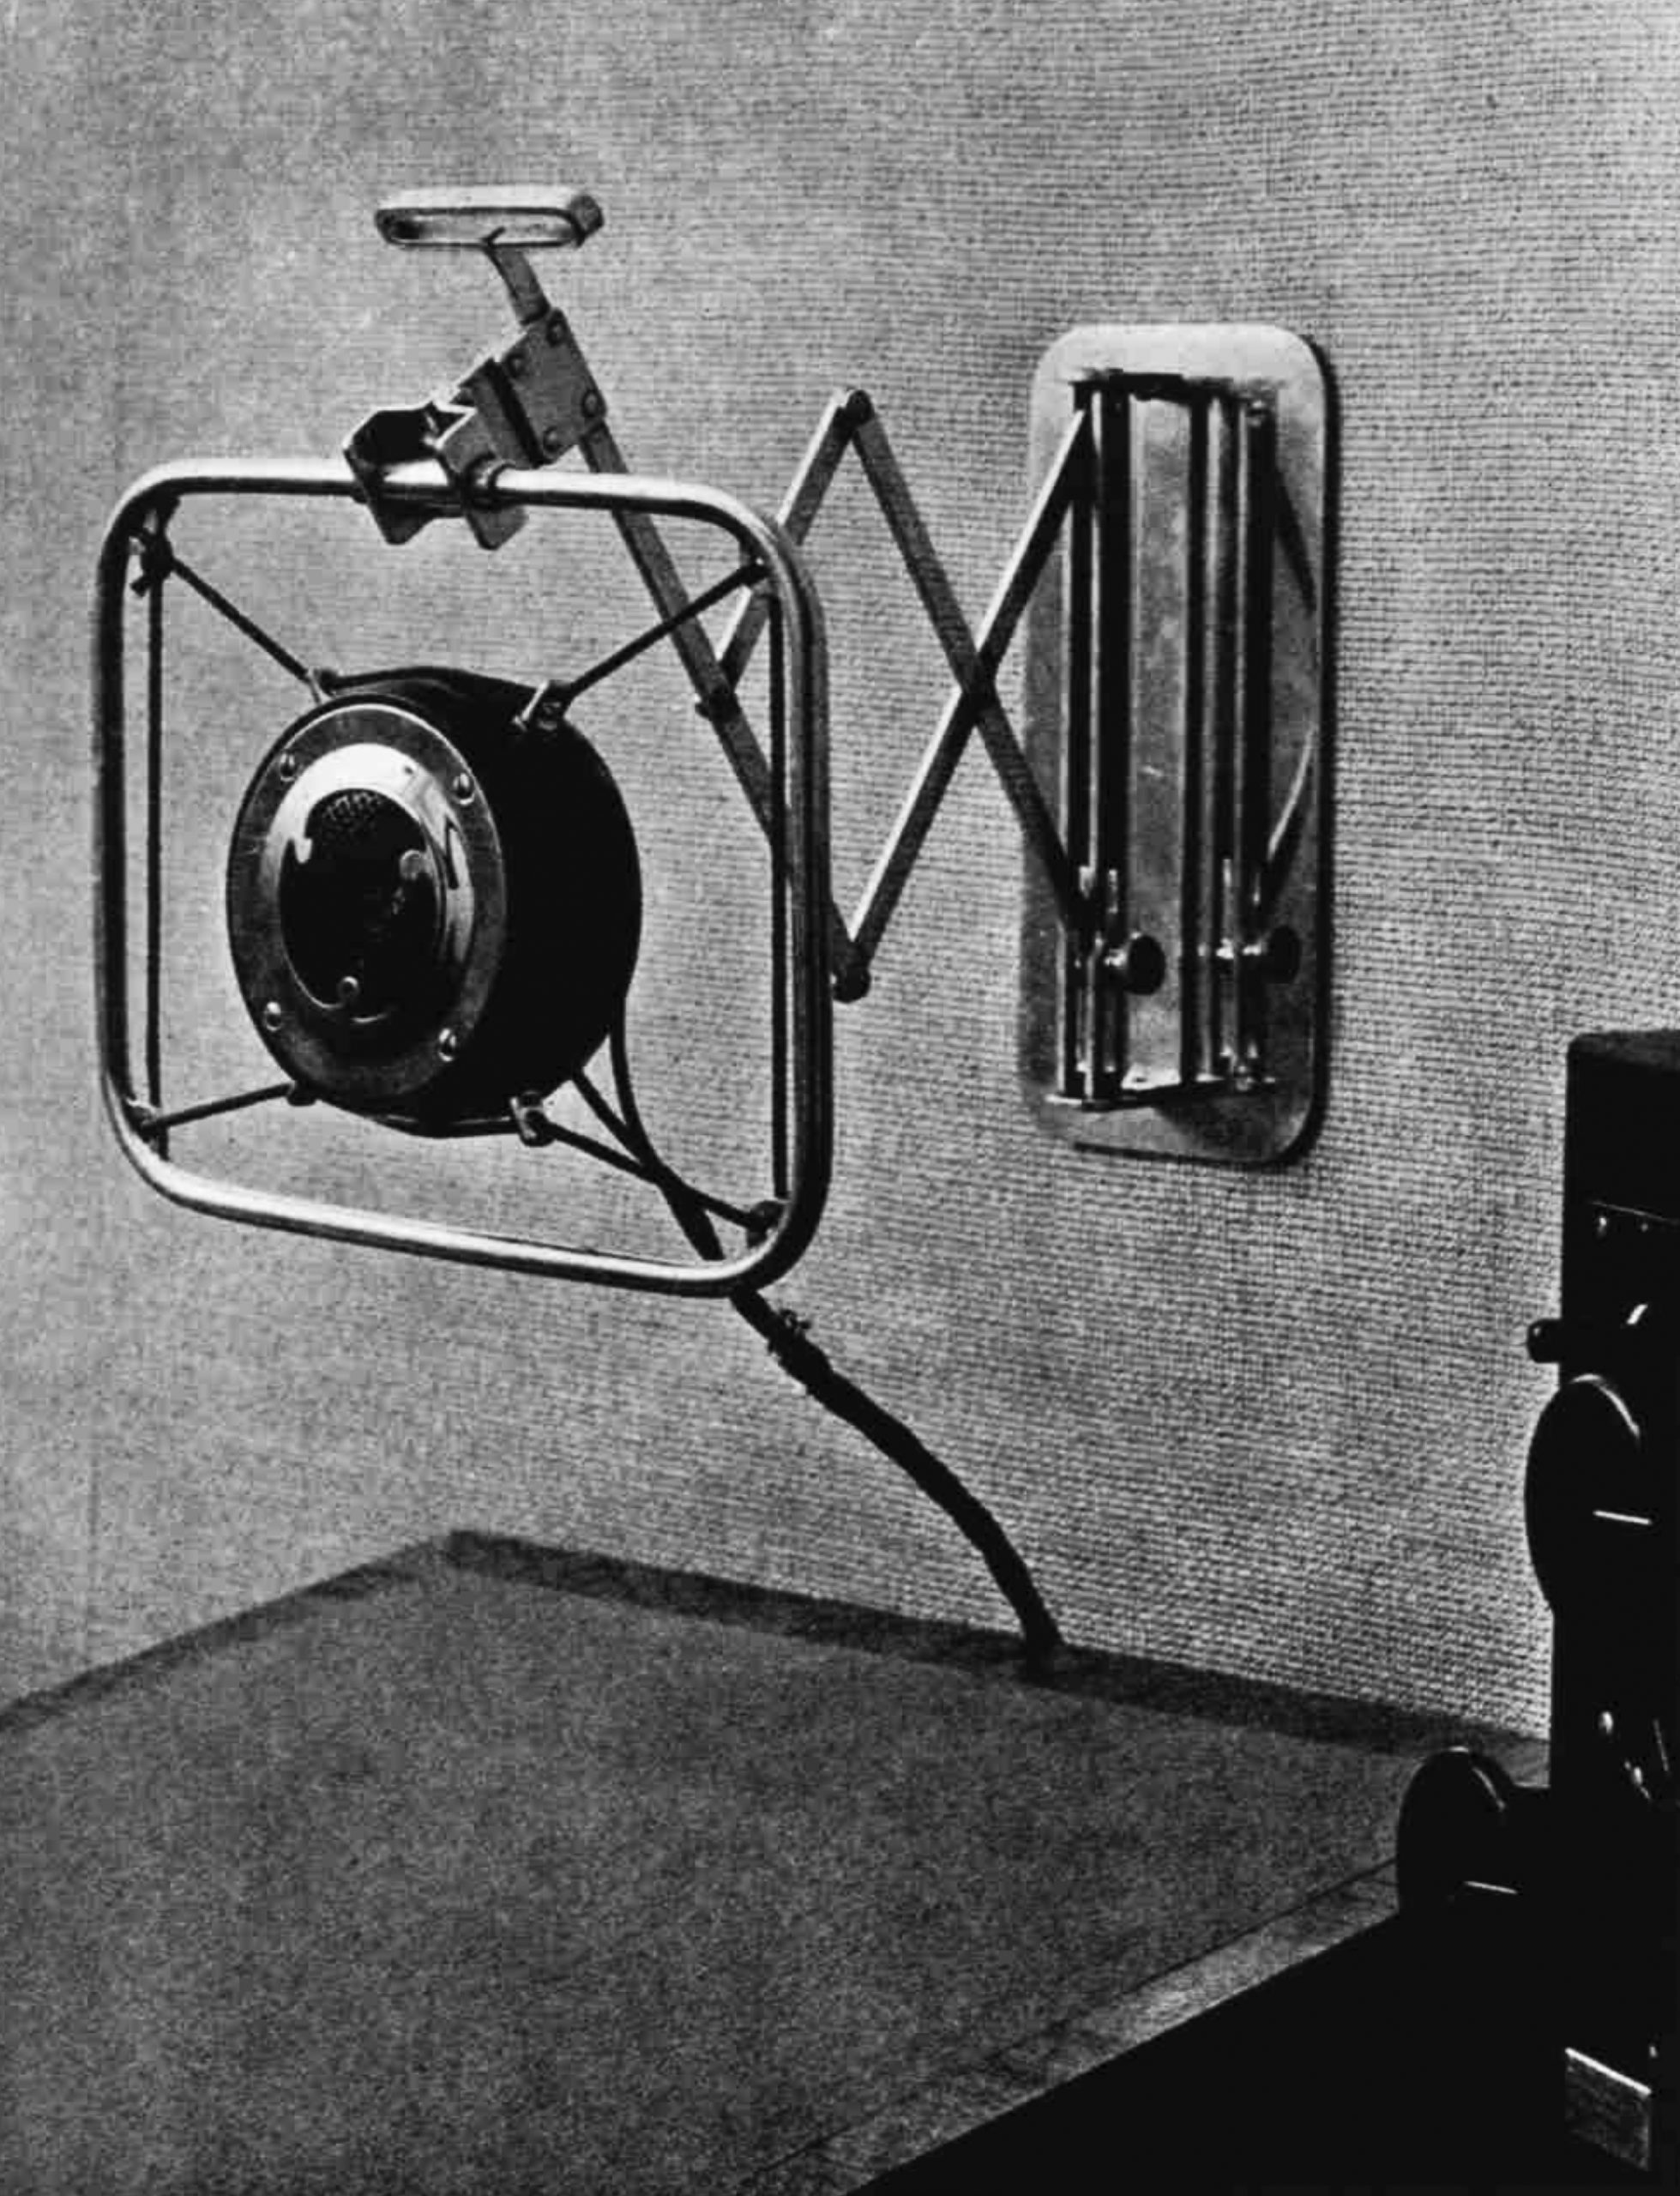 A round microphone in a square frame, bouncing from the wall on a scissor-like projection